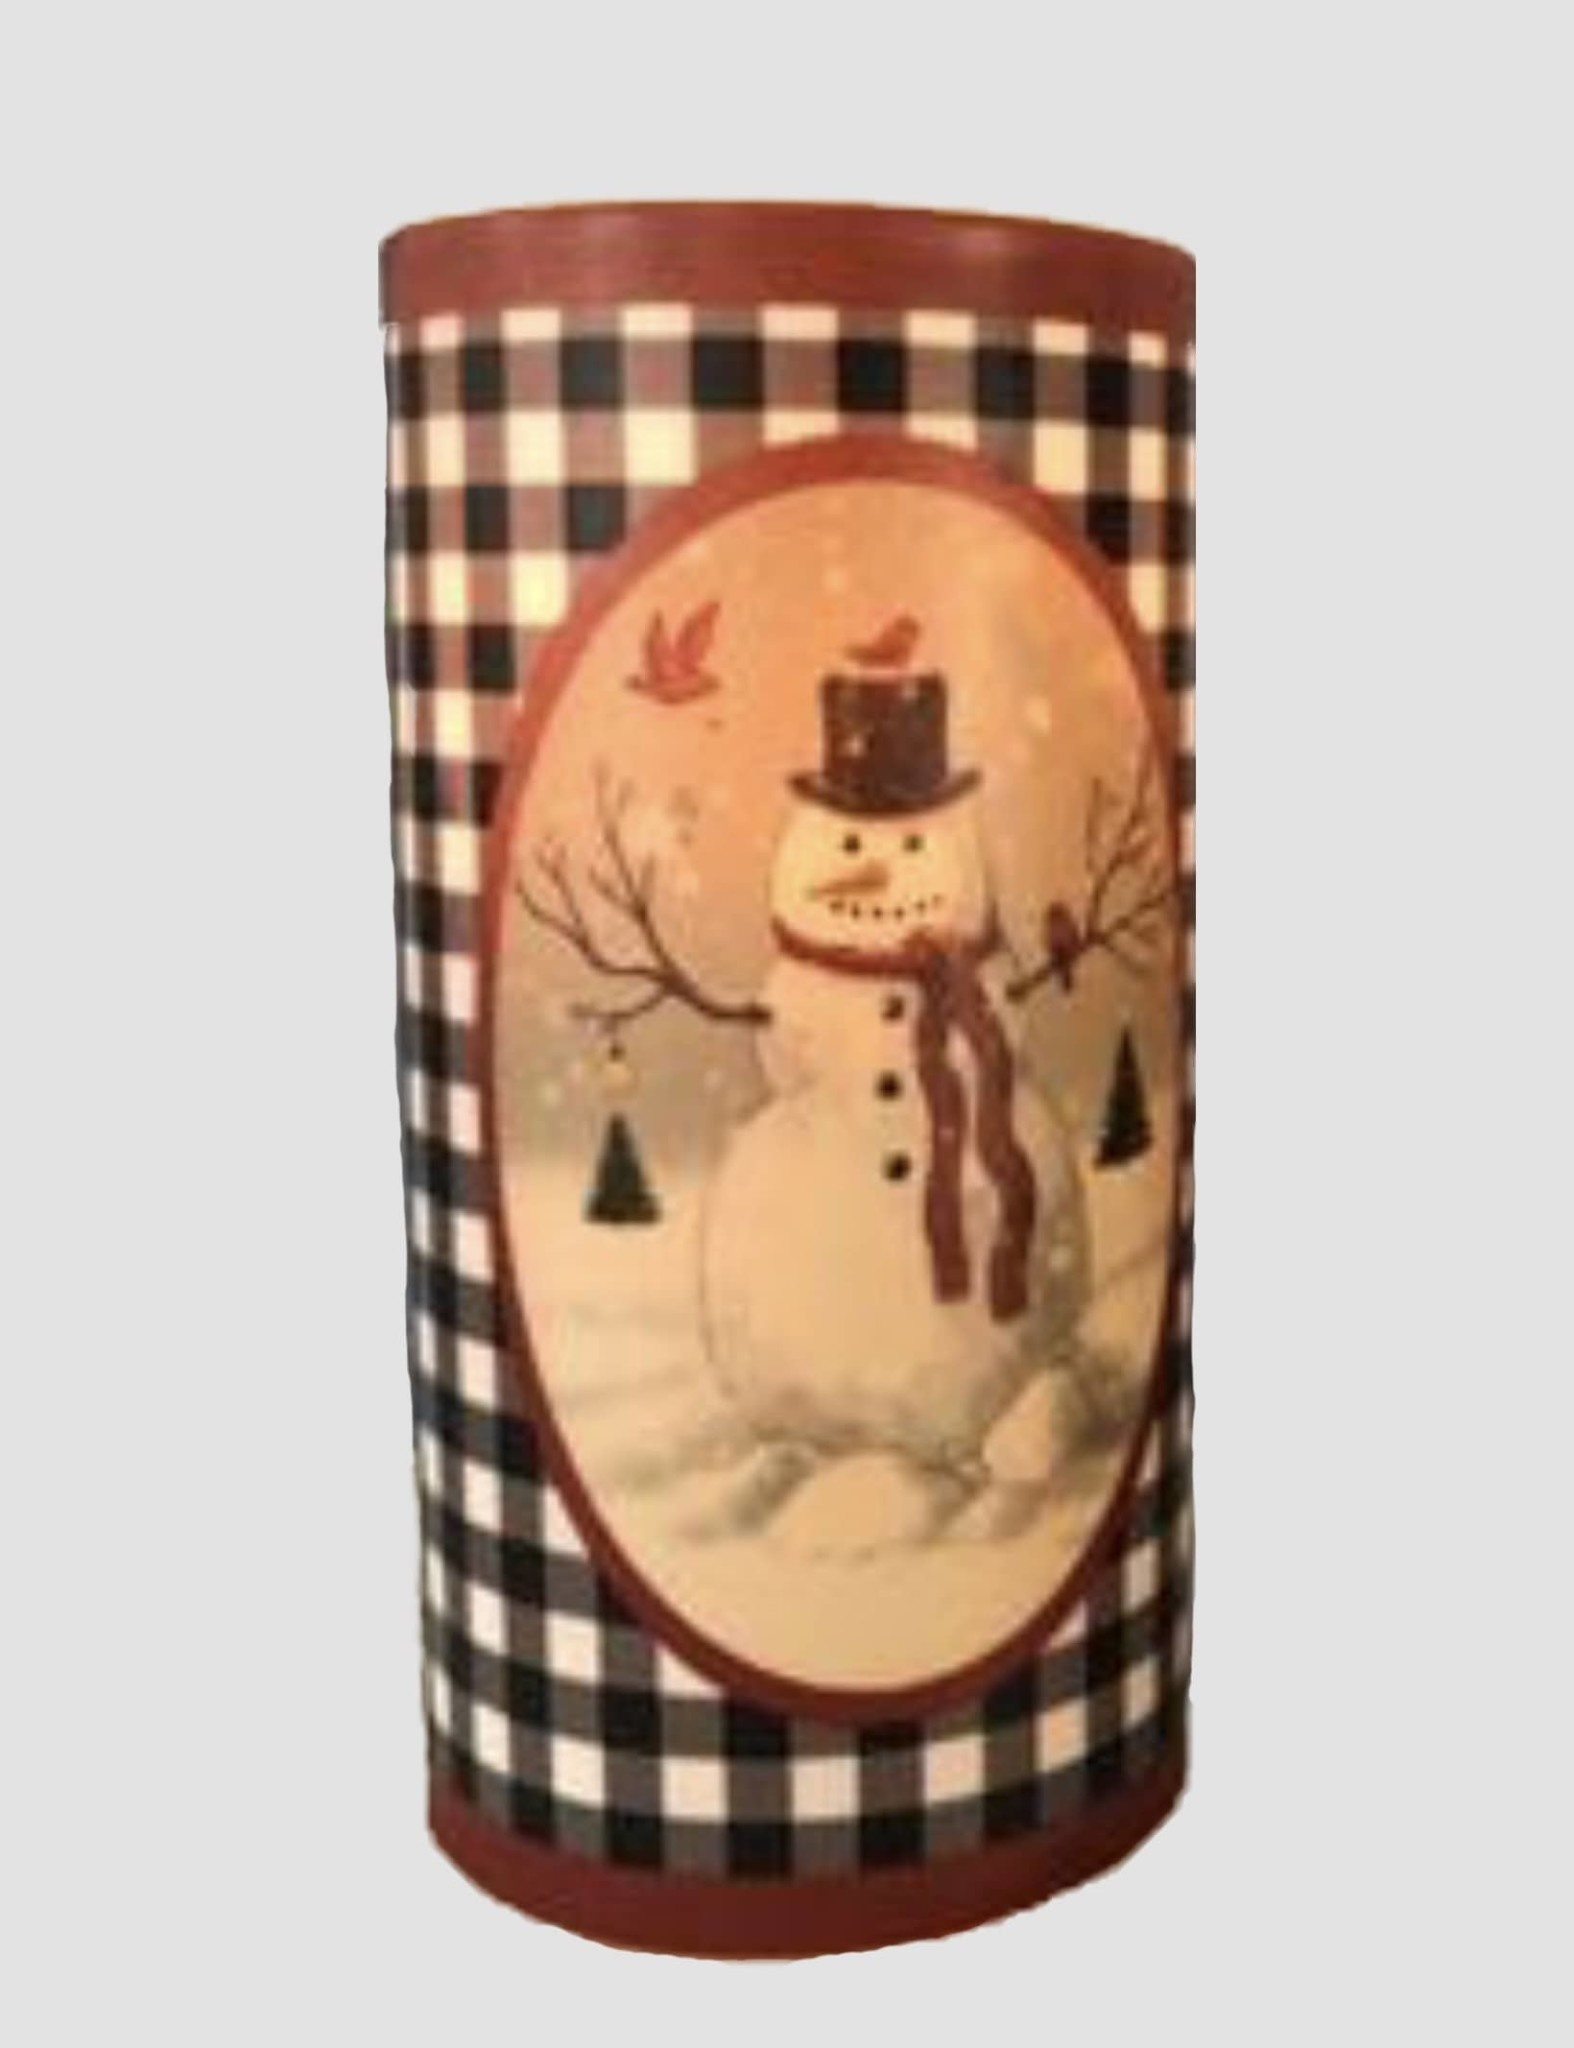 Nana's Farmhouse Buffalo Check Snowman Pillar Candle with Cardinals - 6""